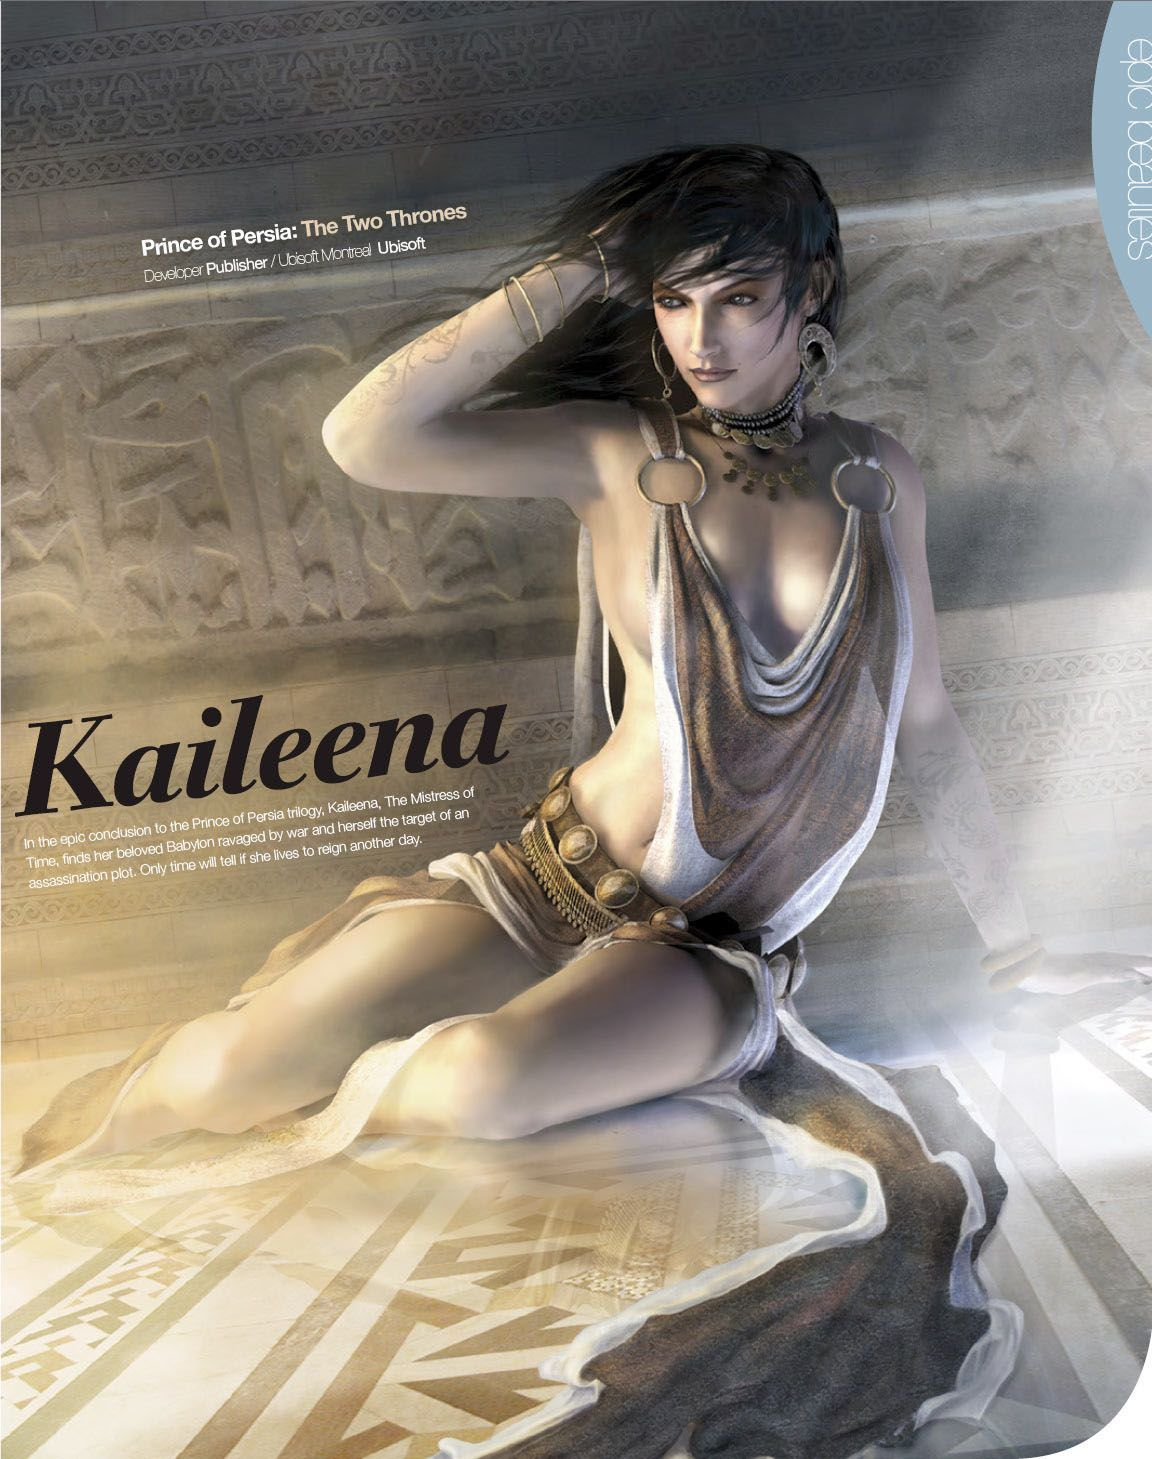 Kaileena nude mod prince of persia warrior  cartoon image